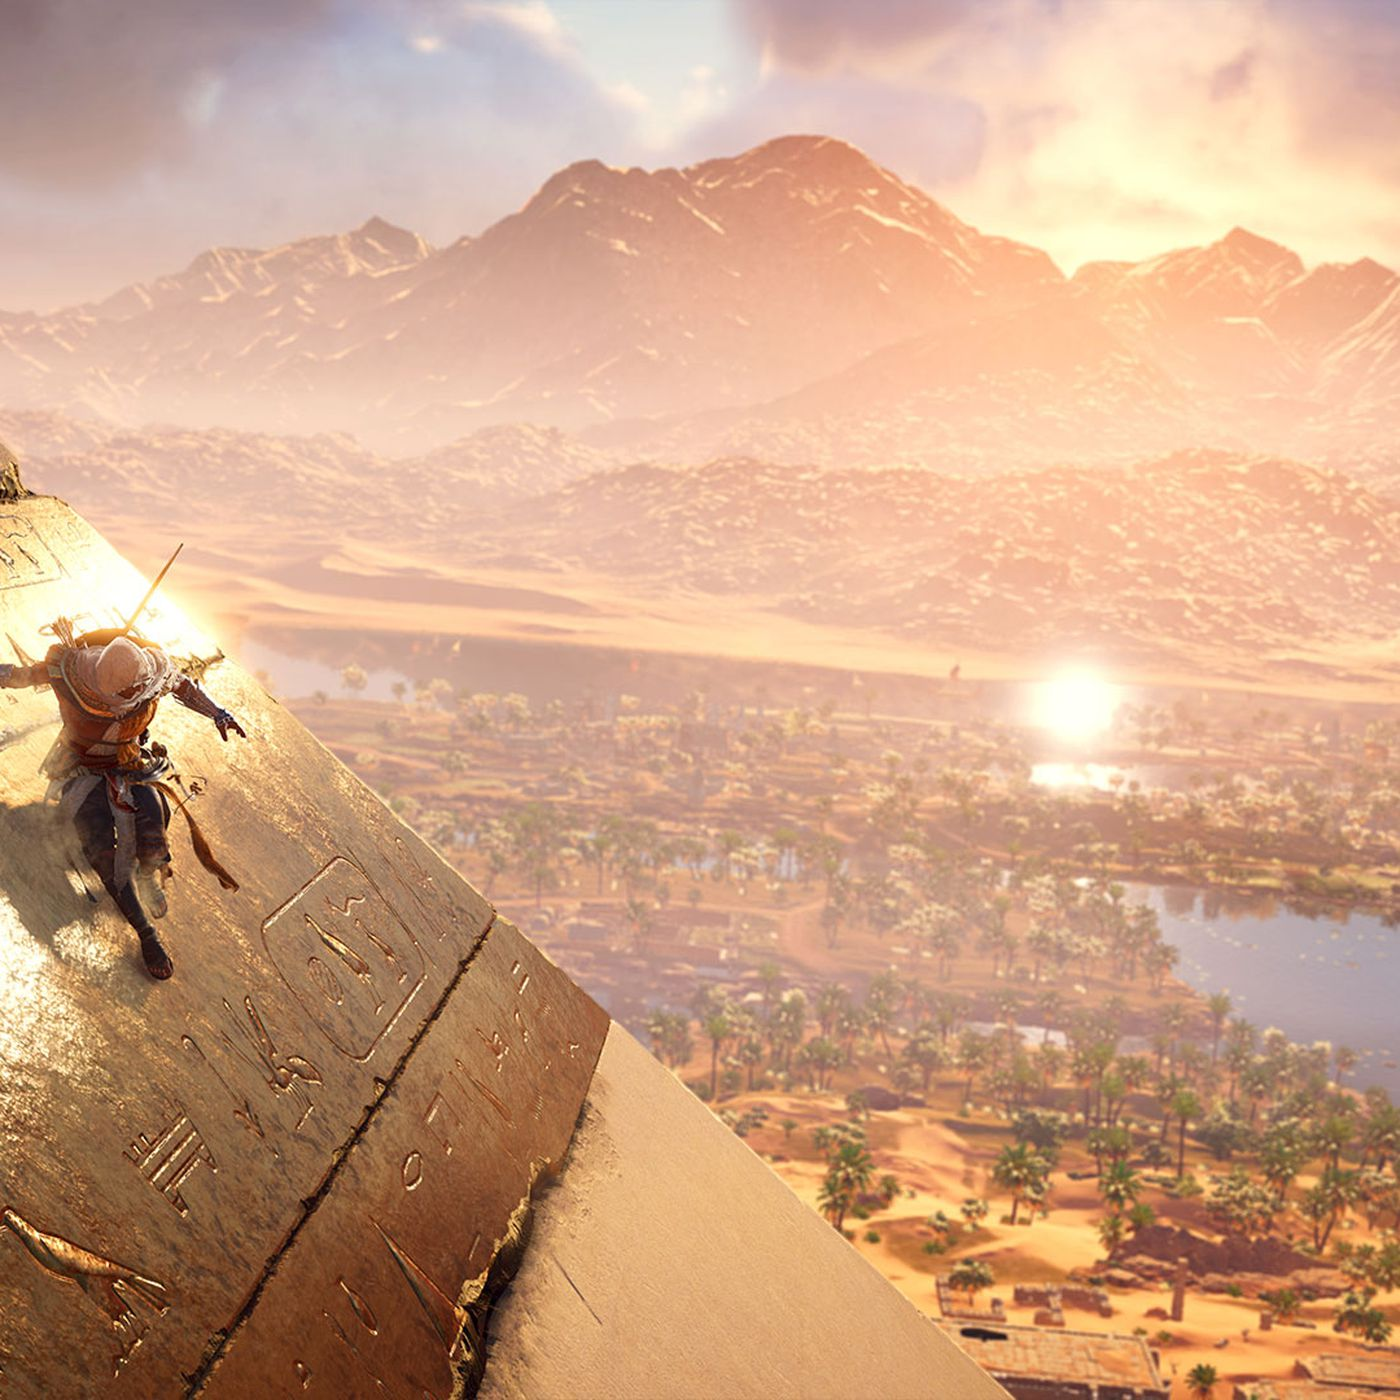 Assassin S Creed Origins Finds New Life In A New Setting The Verge